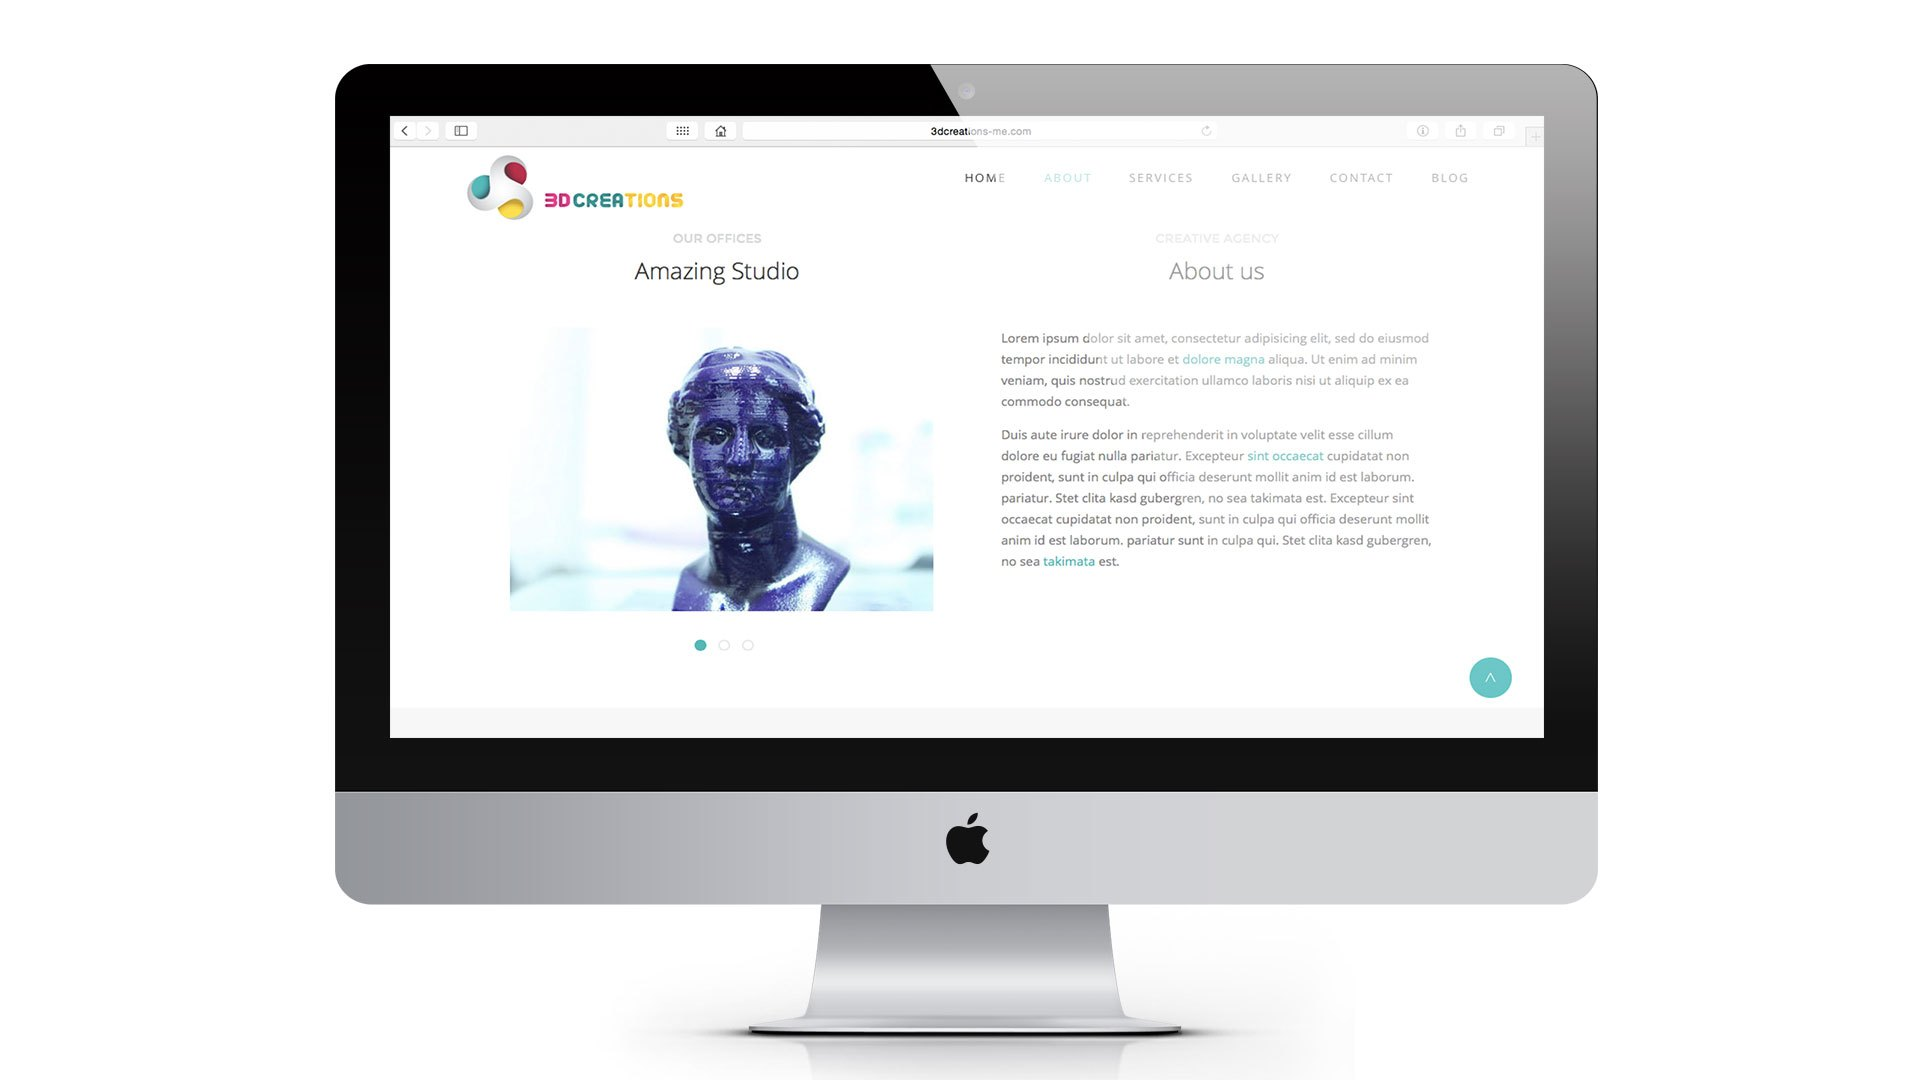 3d-creations-website-about-us-page